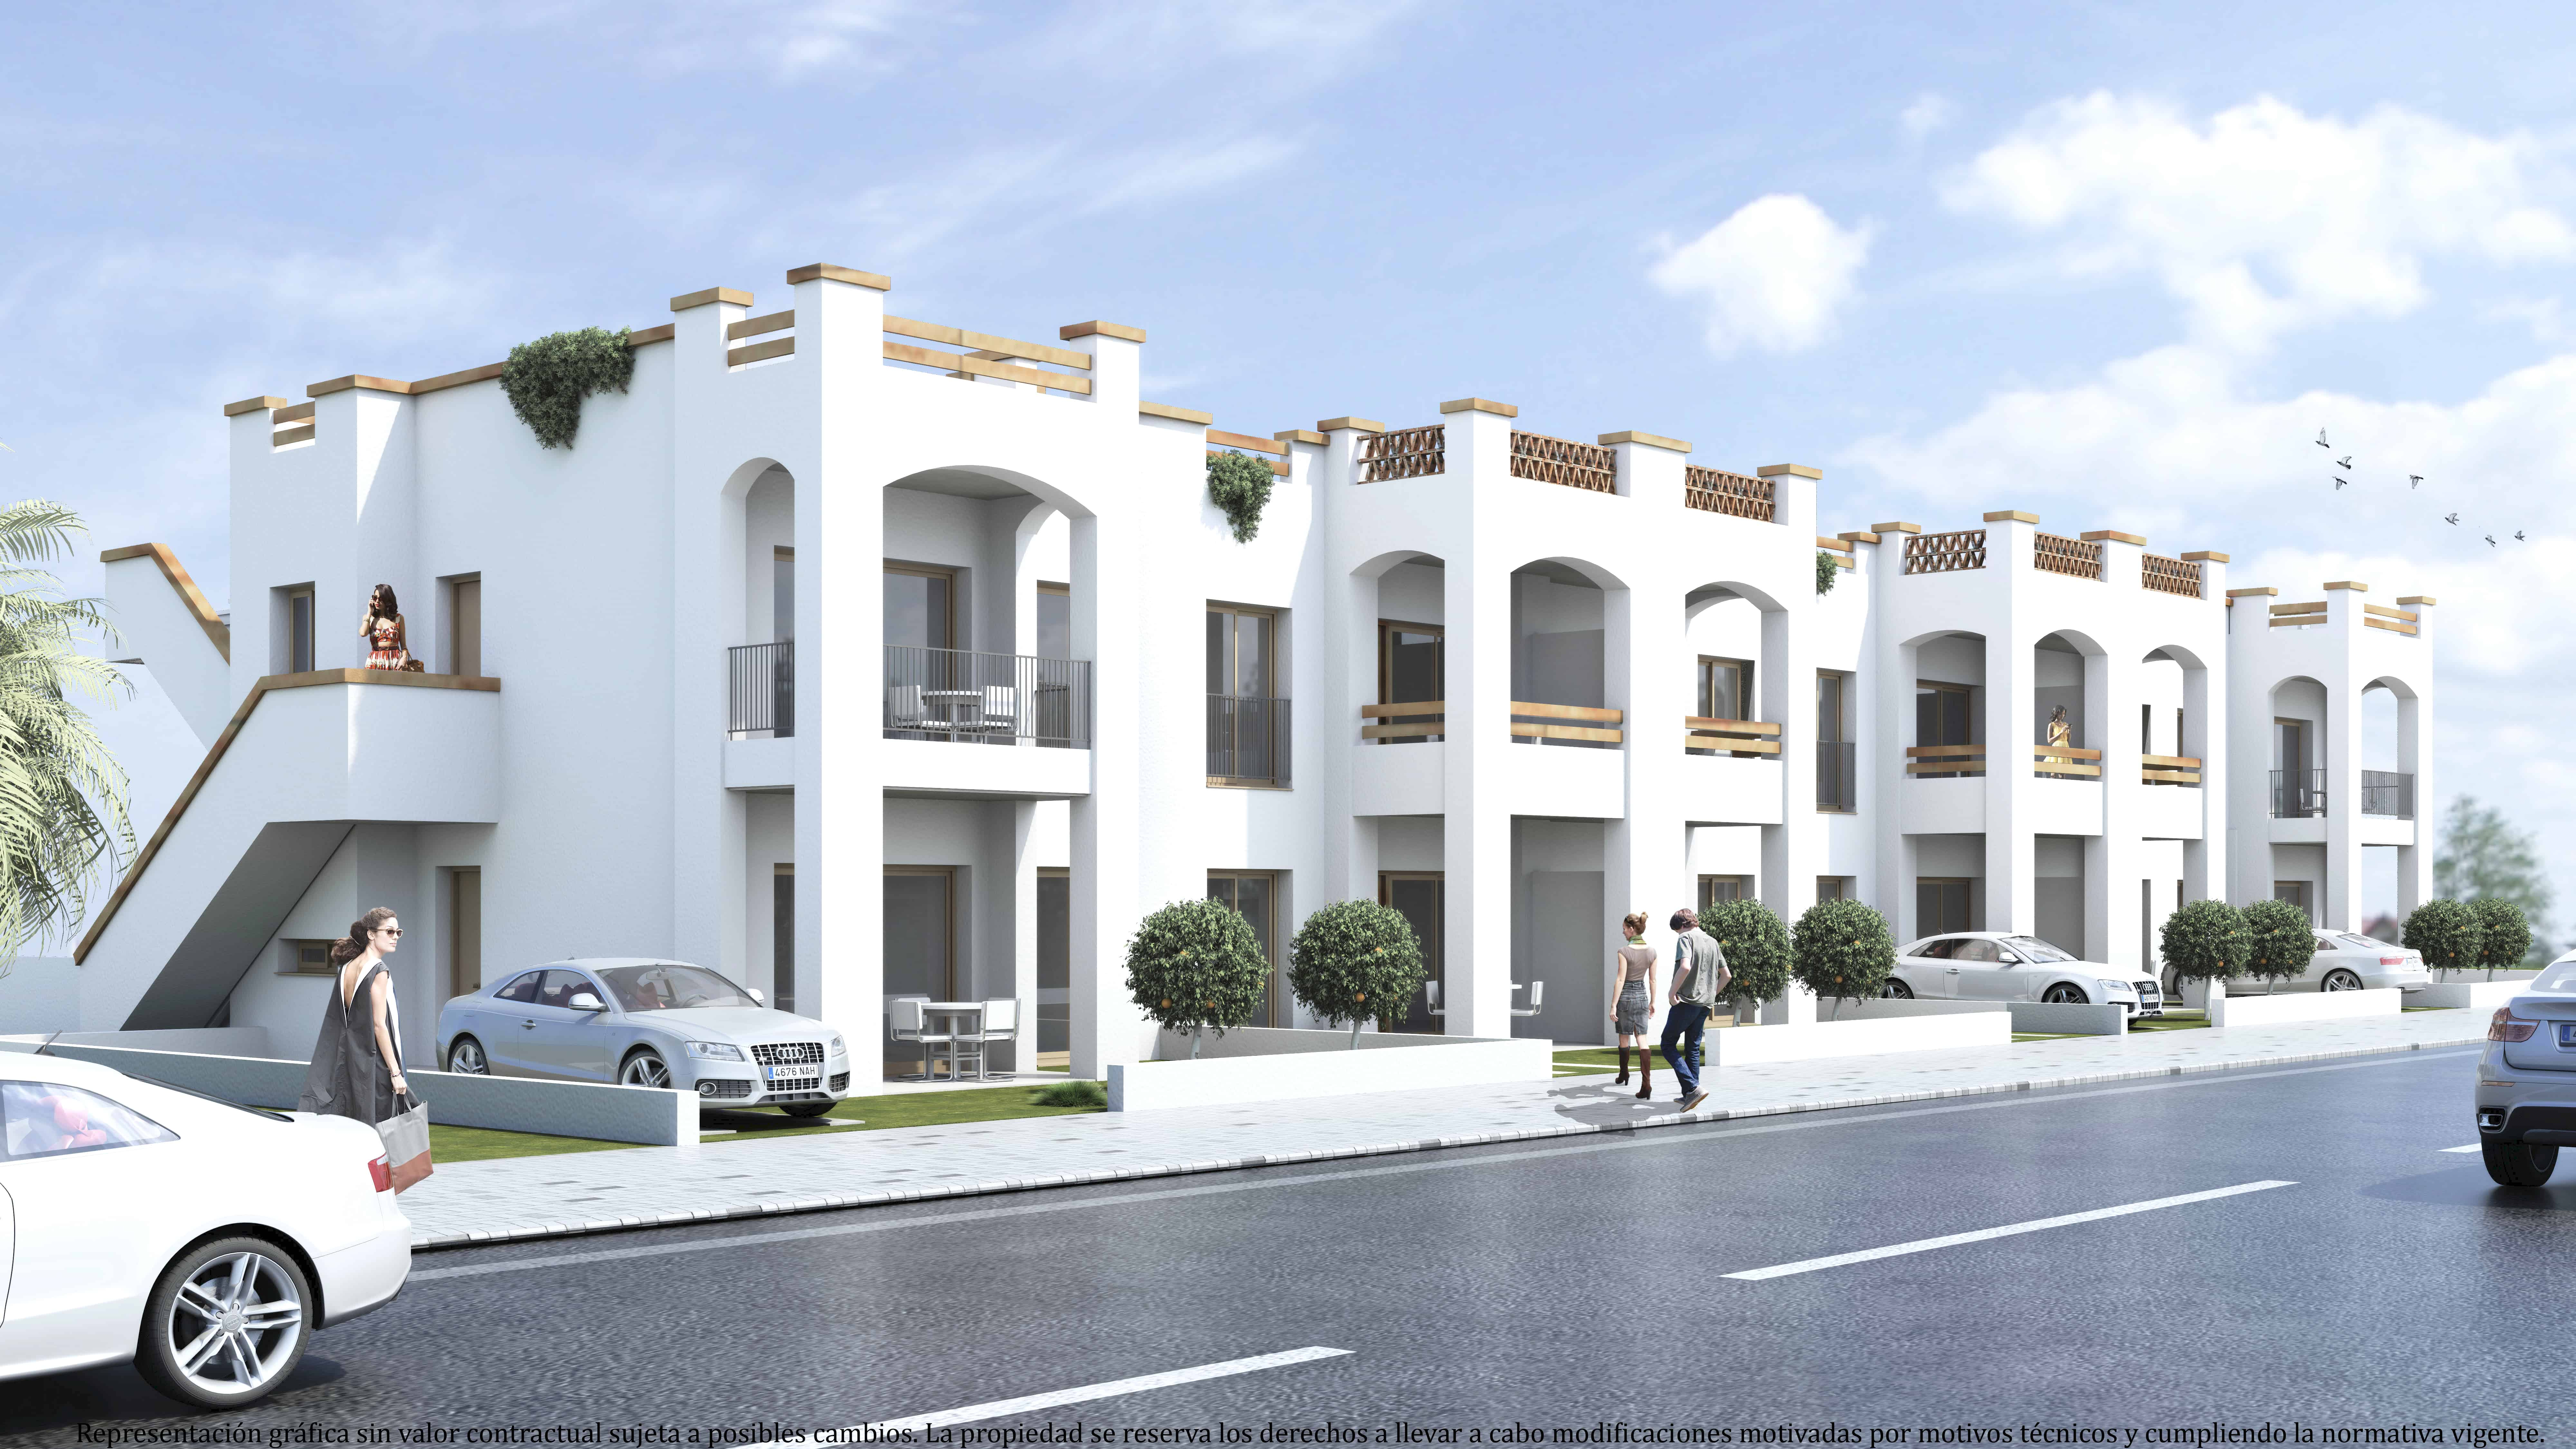 Ref:RH-10903-property Bungalows For Sale in Lorca